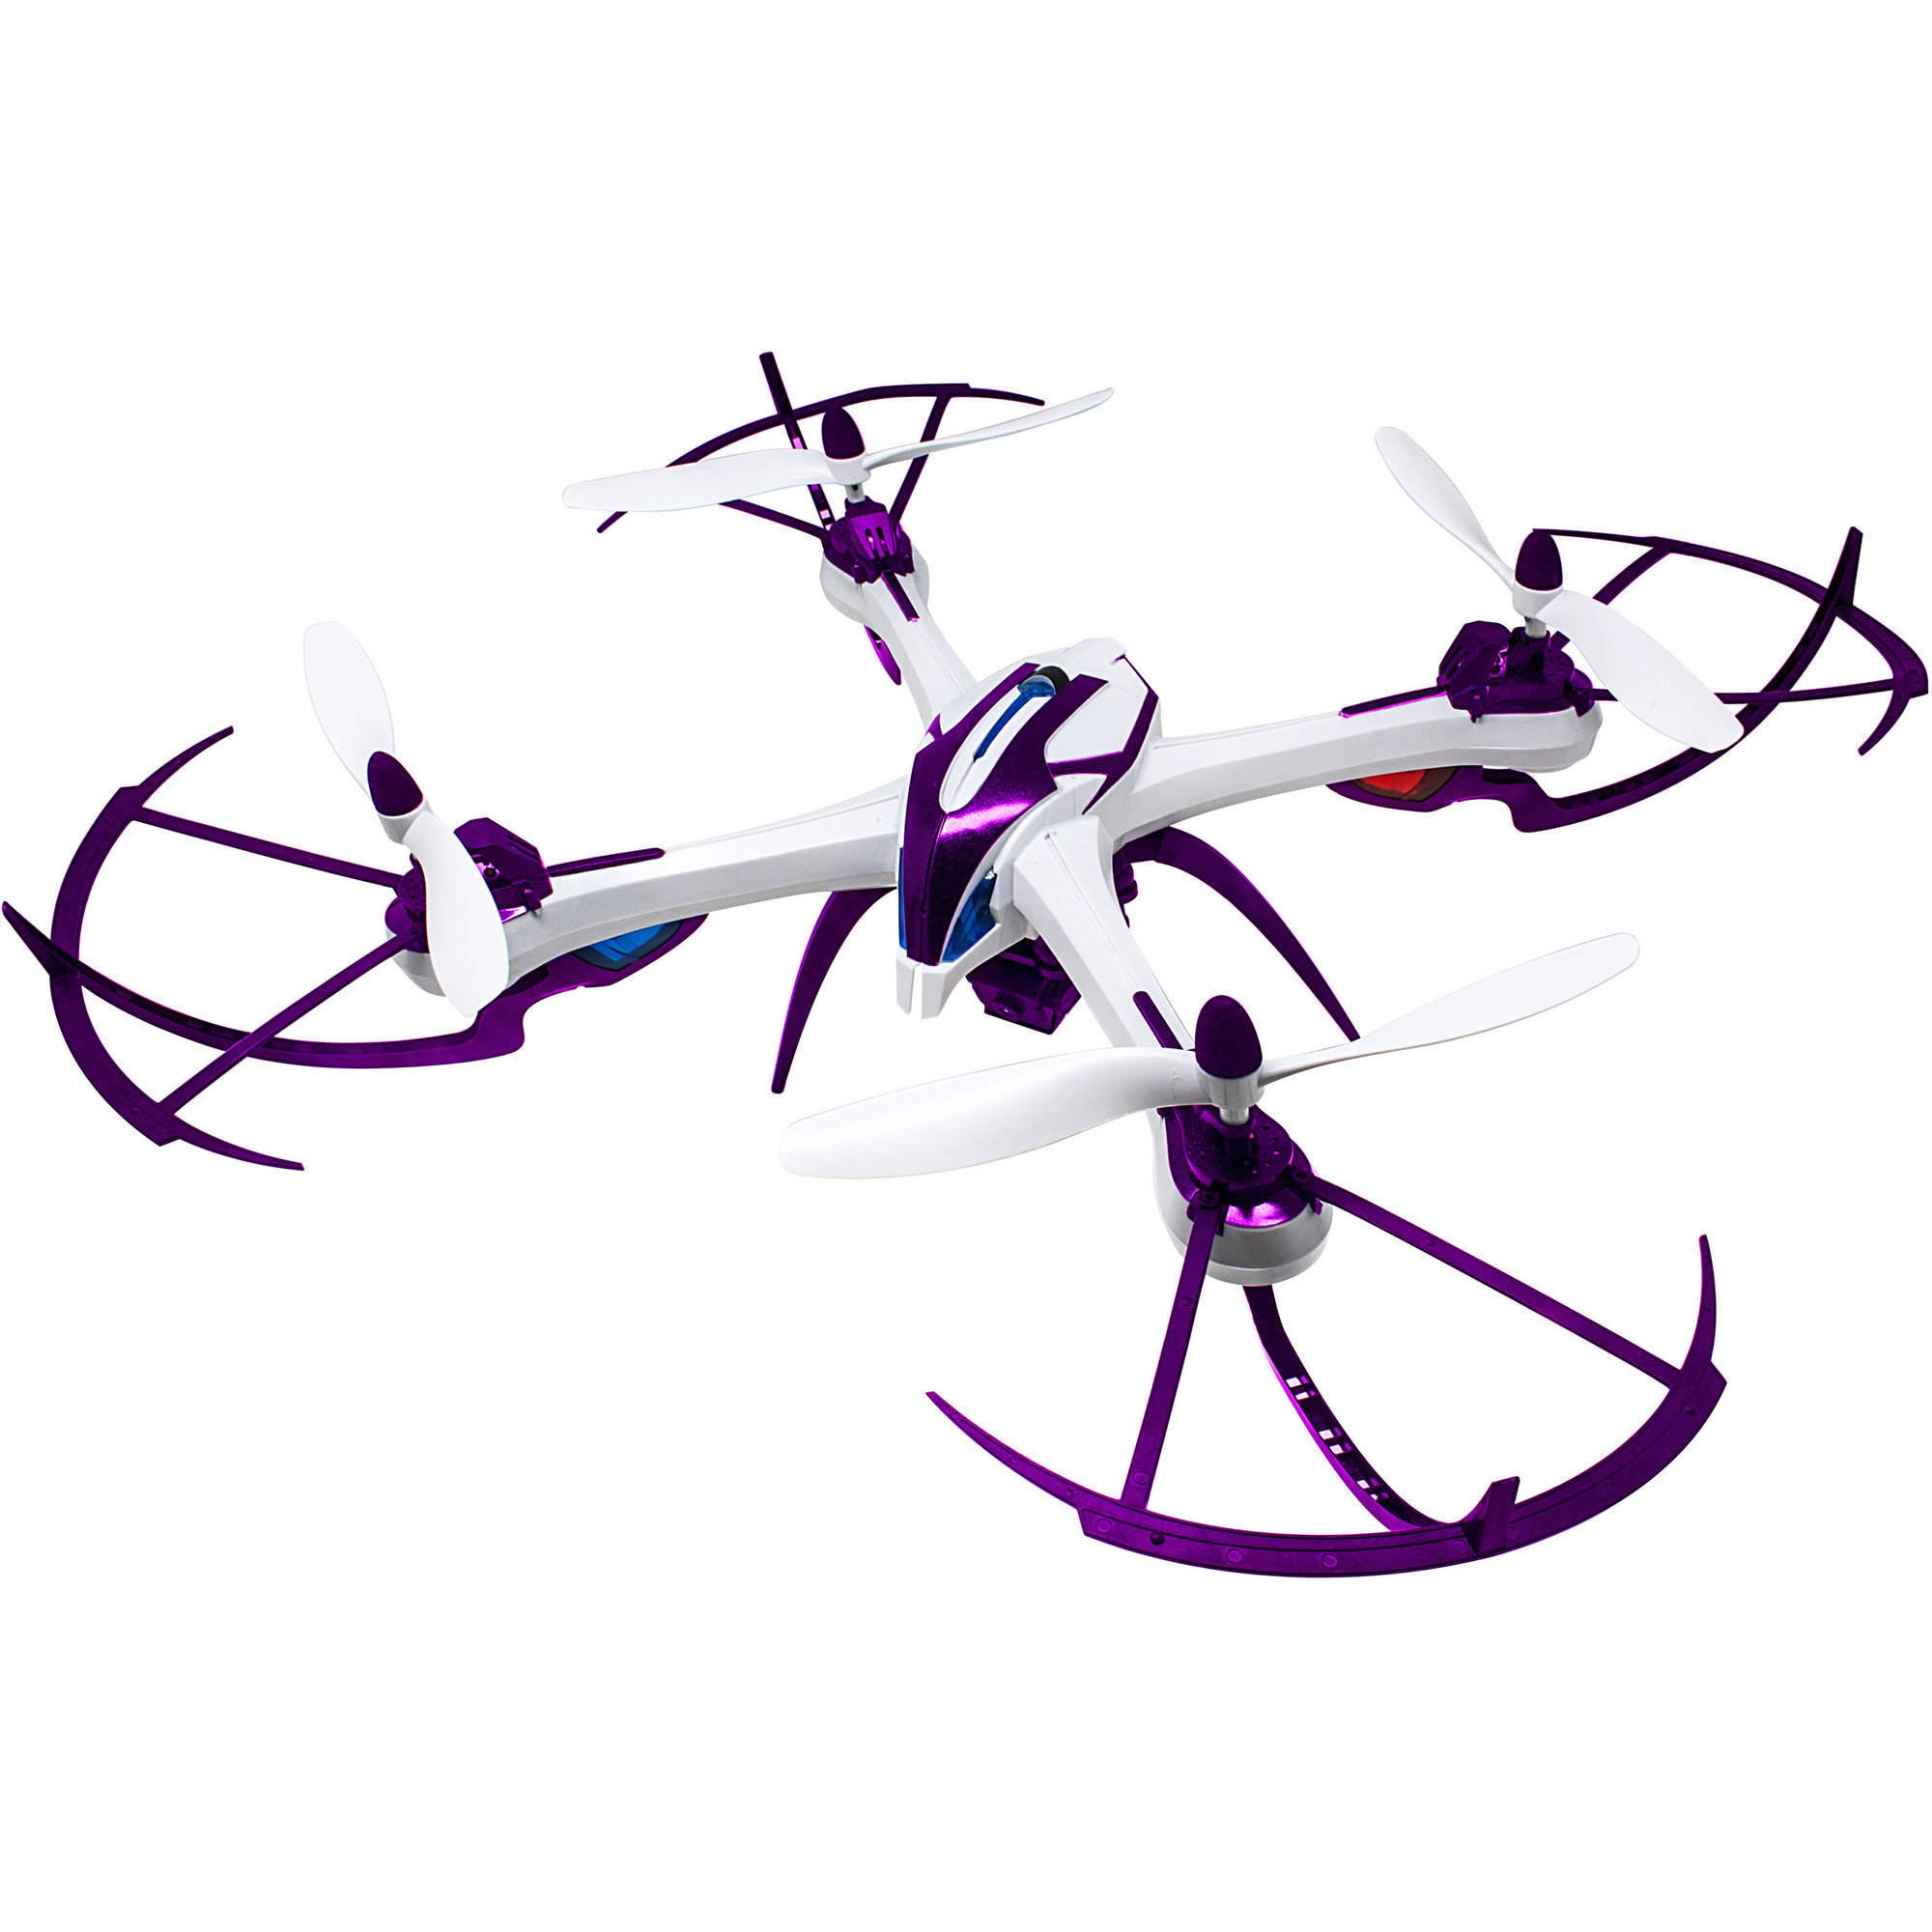 Aerial Quadrone Sentinel Drone Toy with 5MP Camera with 360� Turns Flips Rolls by DGL by DGL Group